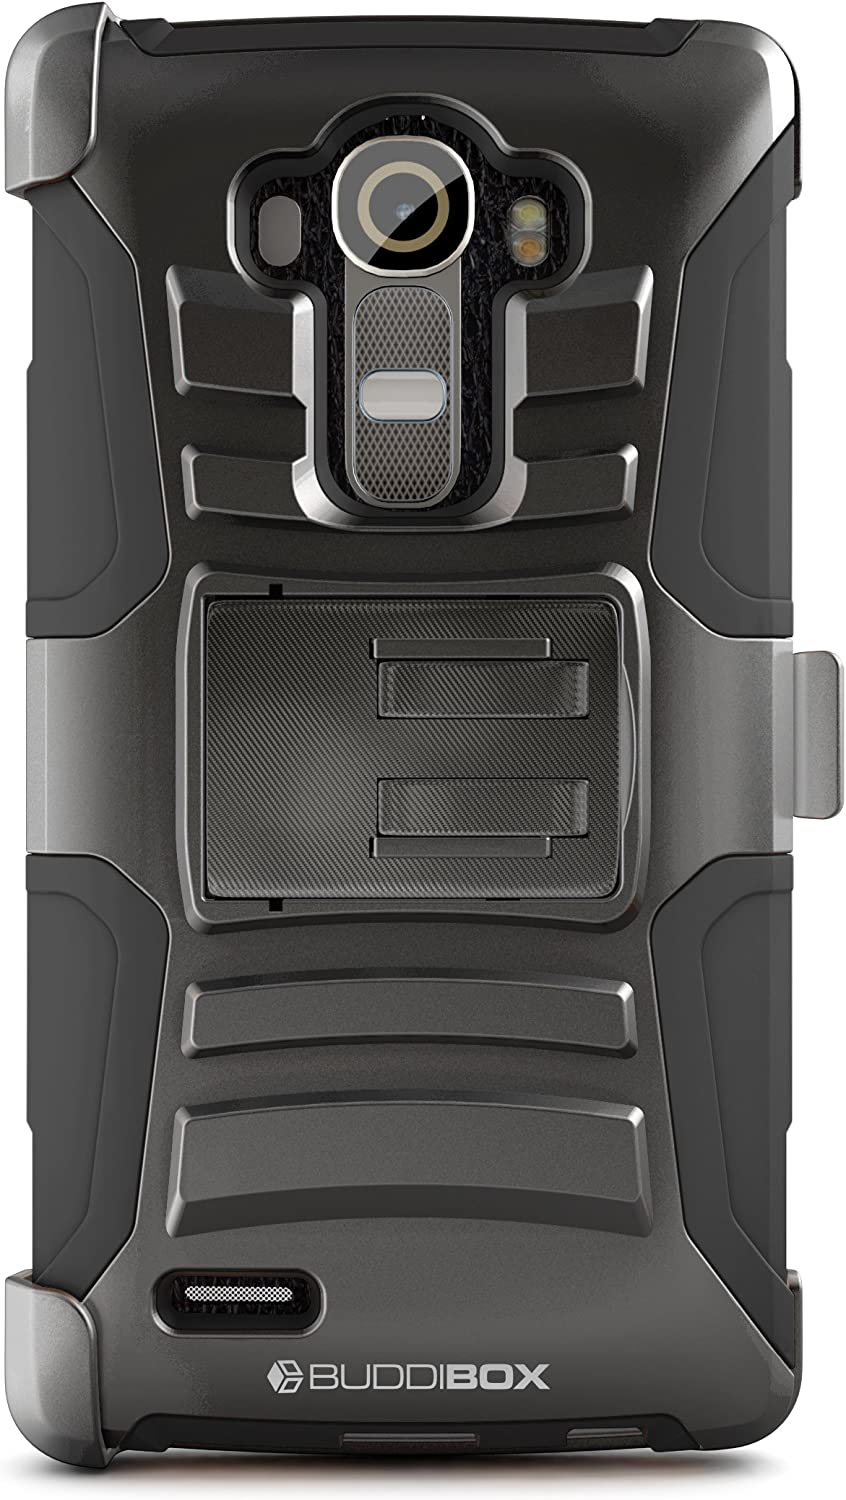 BUDDIBOX LG G4 Case, [HSeries] Heavy Duty Swivel Belt Clip Holster with Kickstand Maximal Protection Case for LG G4, (Black)